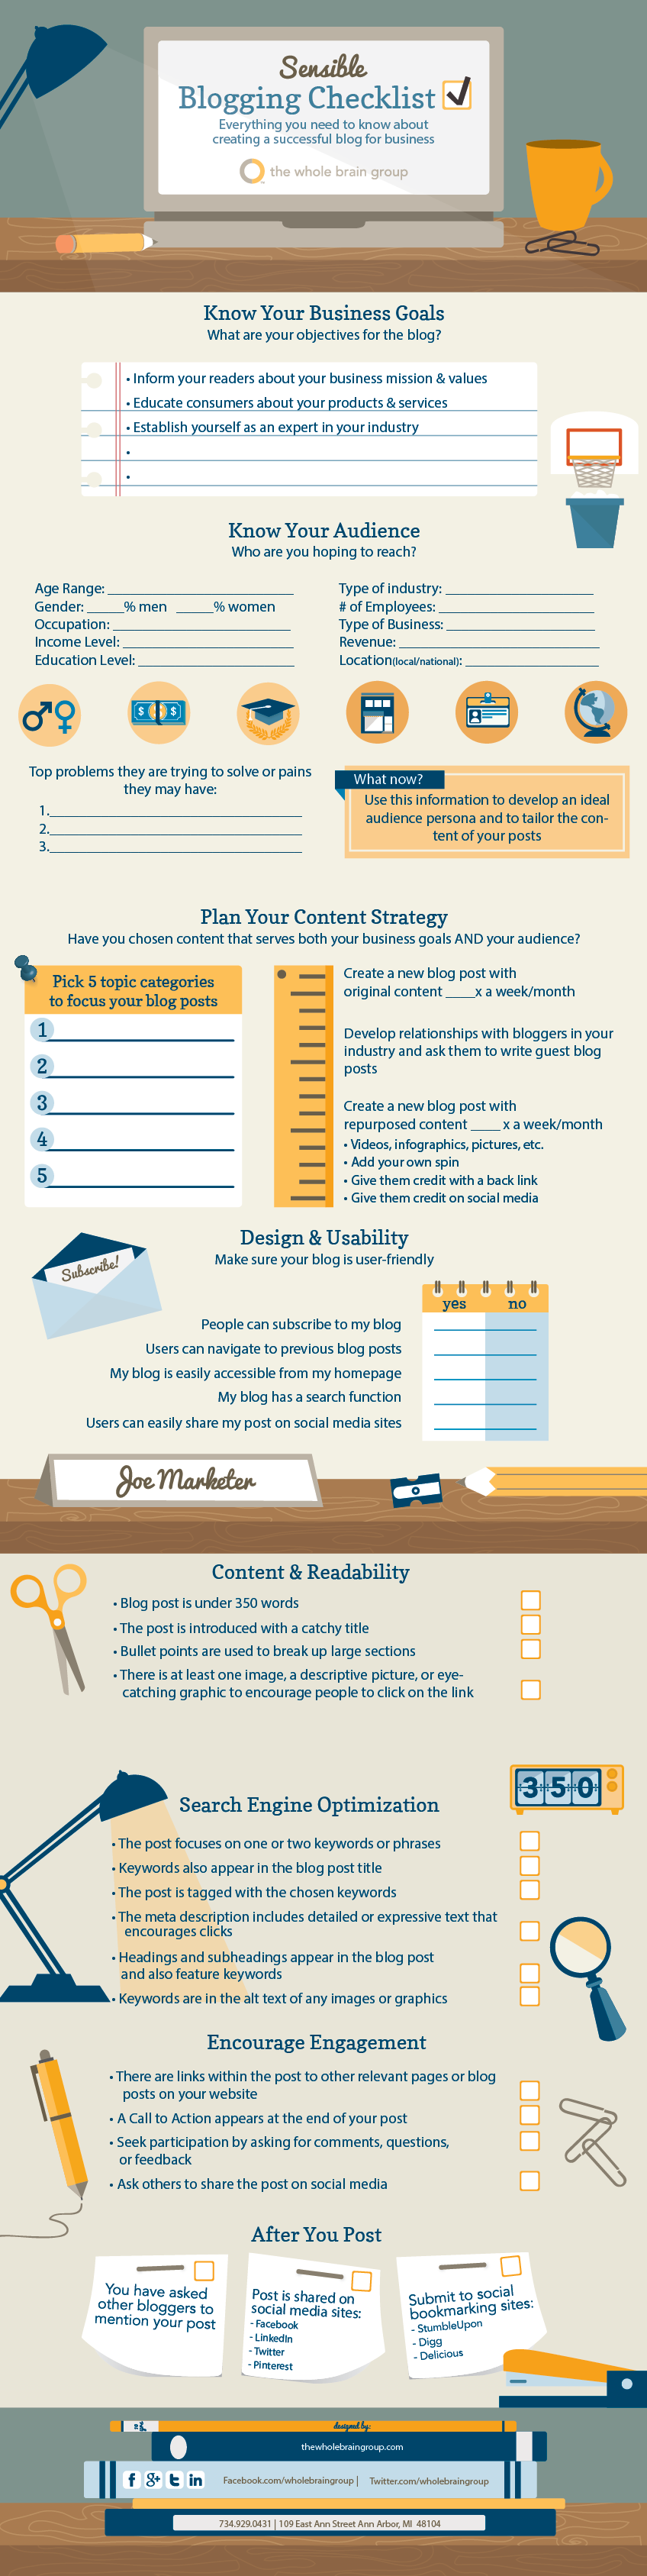 12 Most Common Mistakes Newbie Bloggers Commit + A Checklist For Building A Successful Blog #infographic